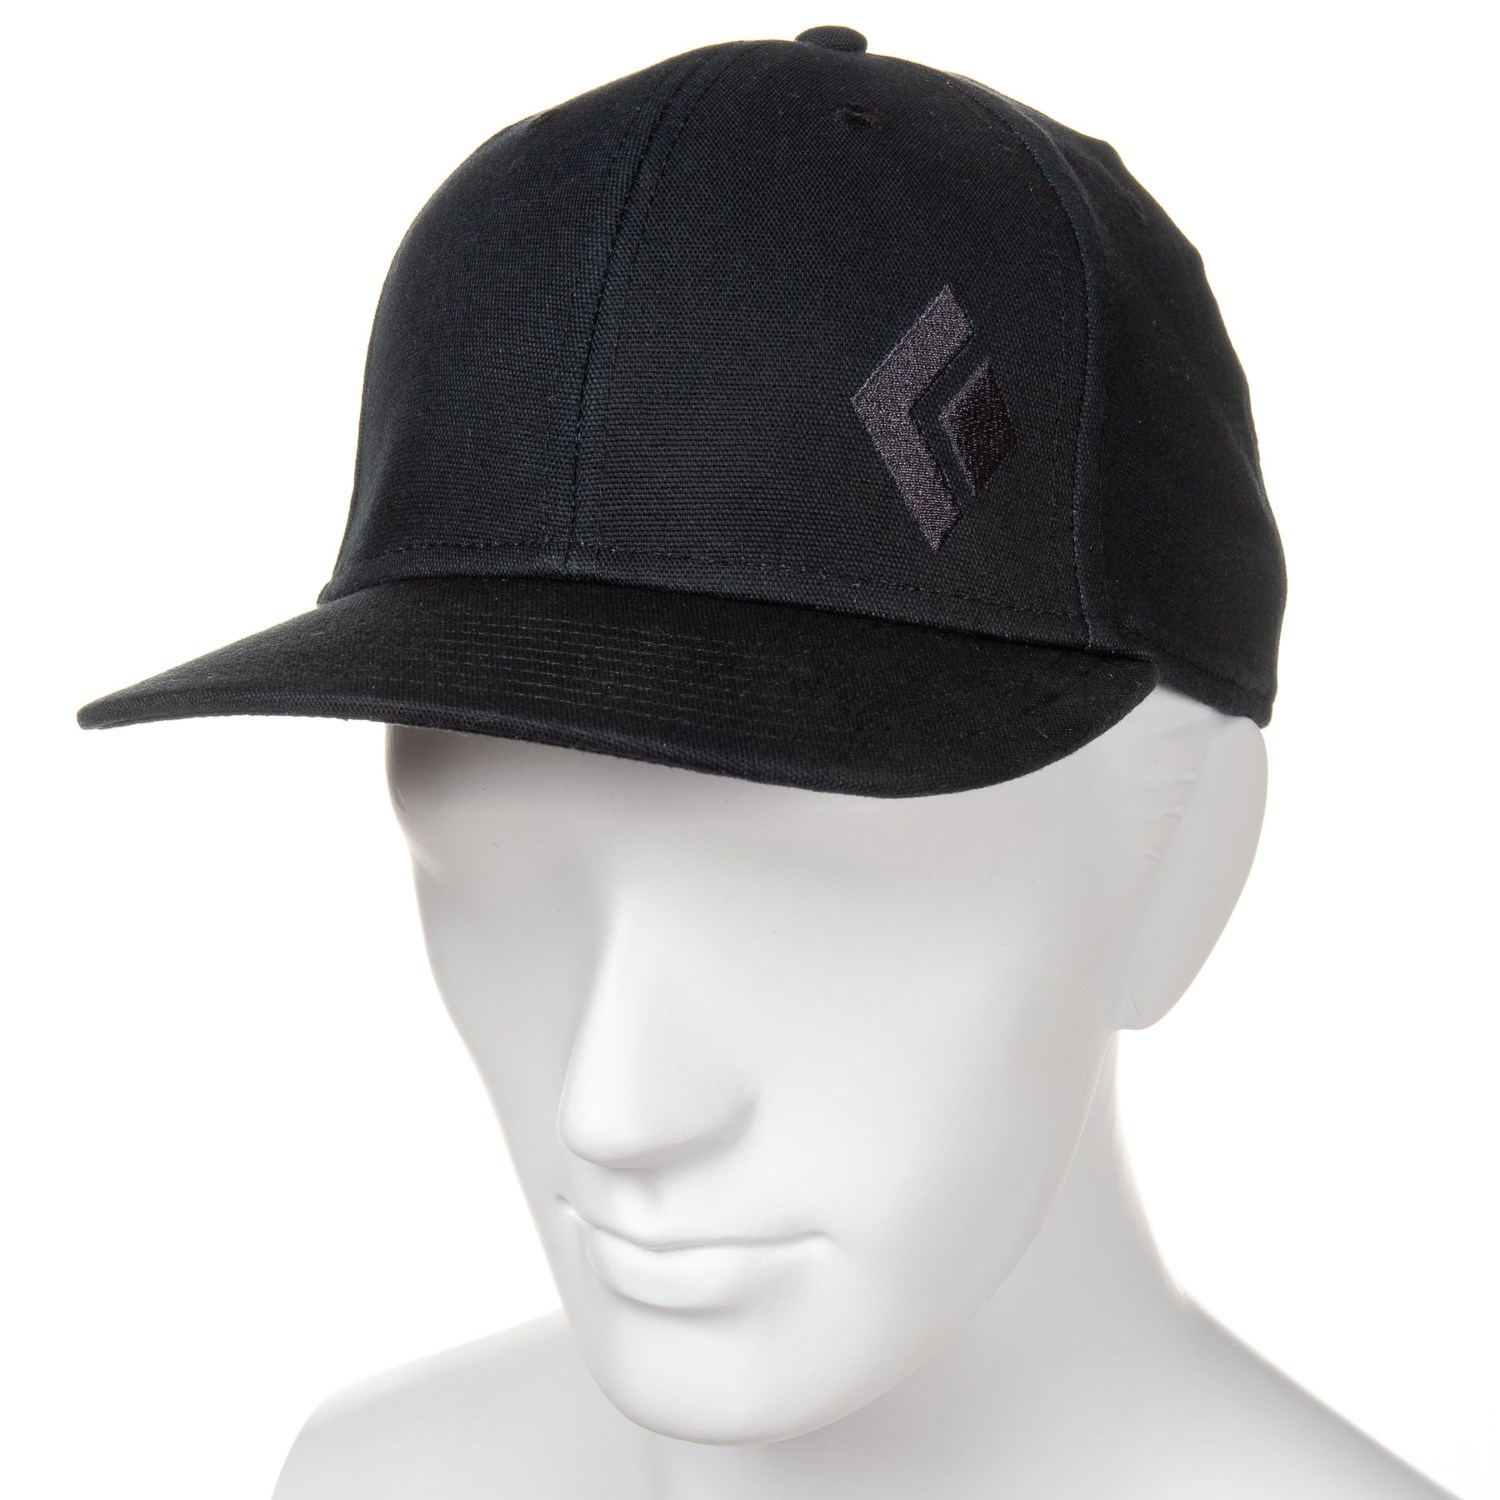 Black Diamond Equipment Logo Baseball Cap (For Men and Women) - Save 48% 6c4ccca00